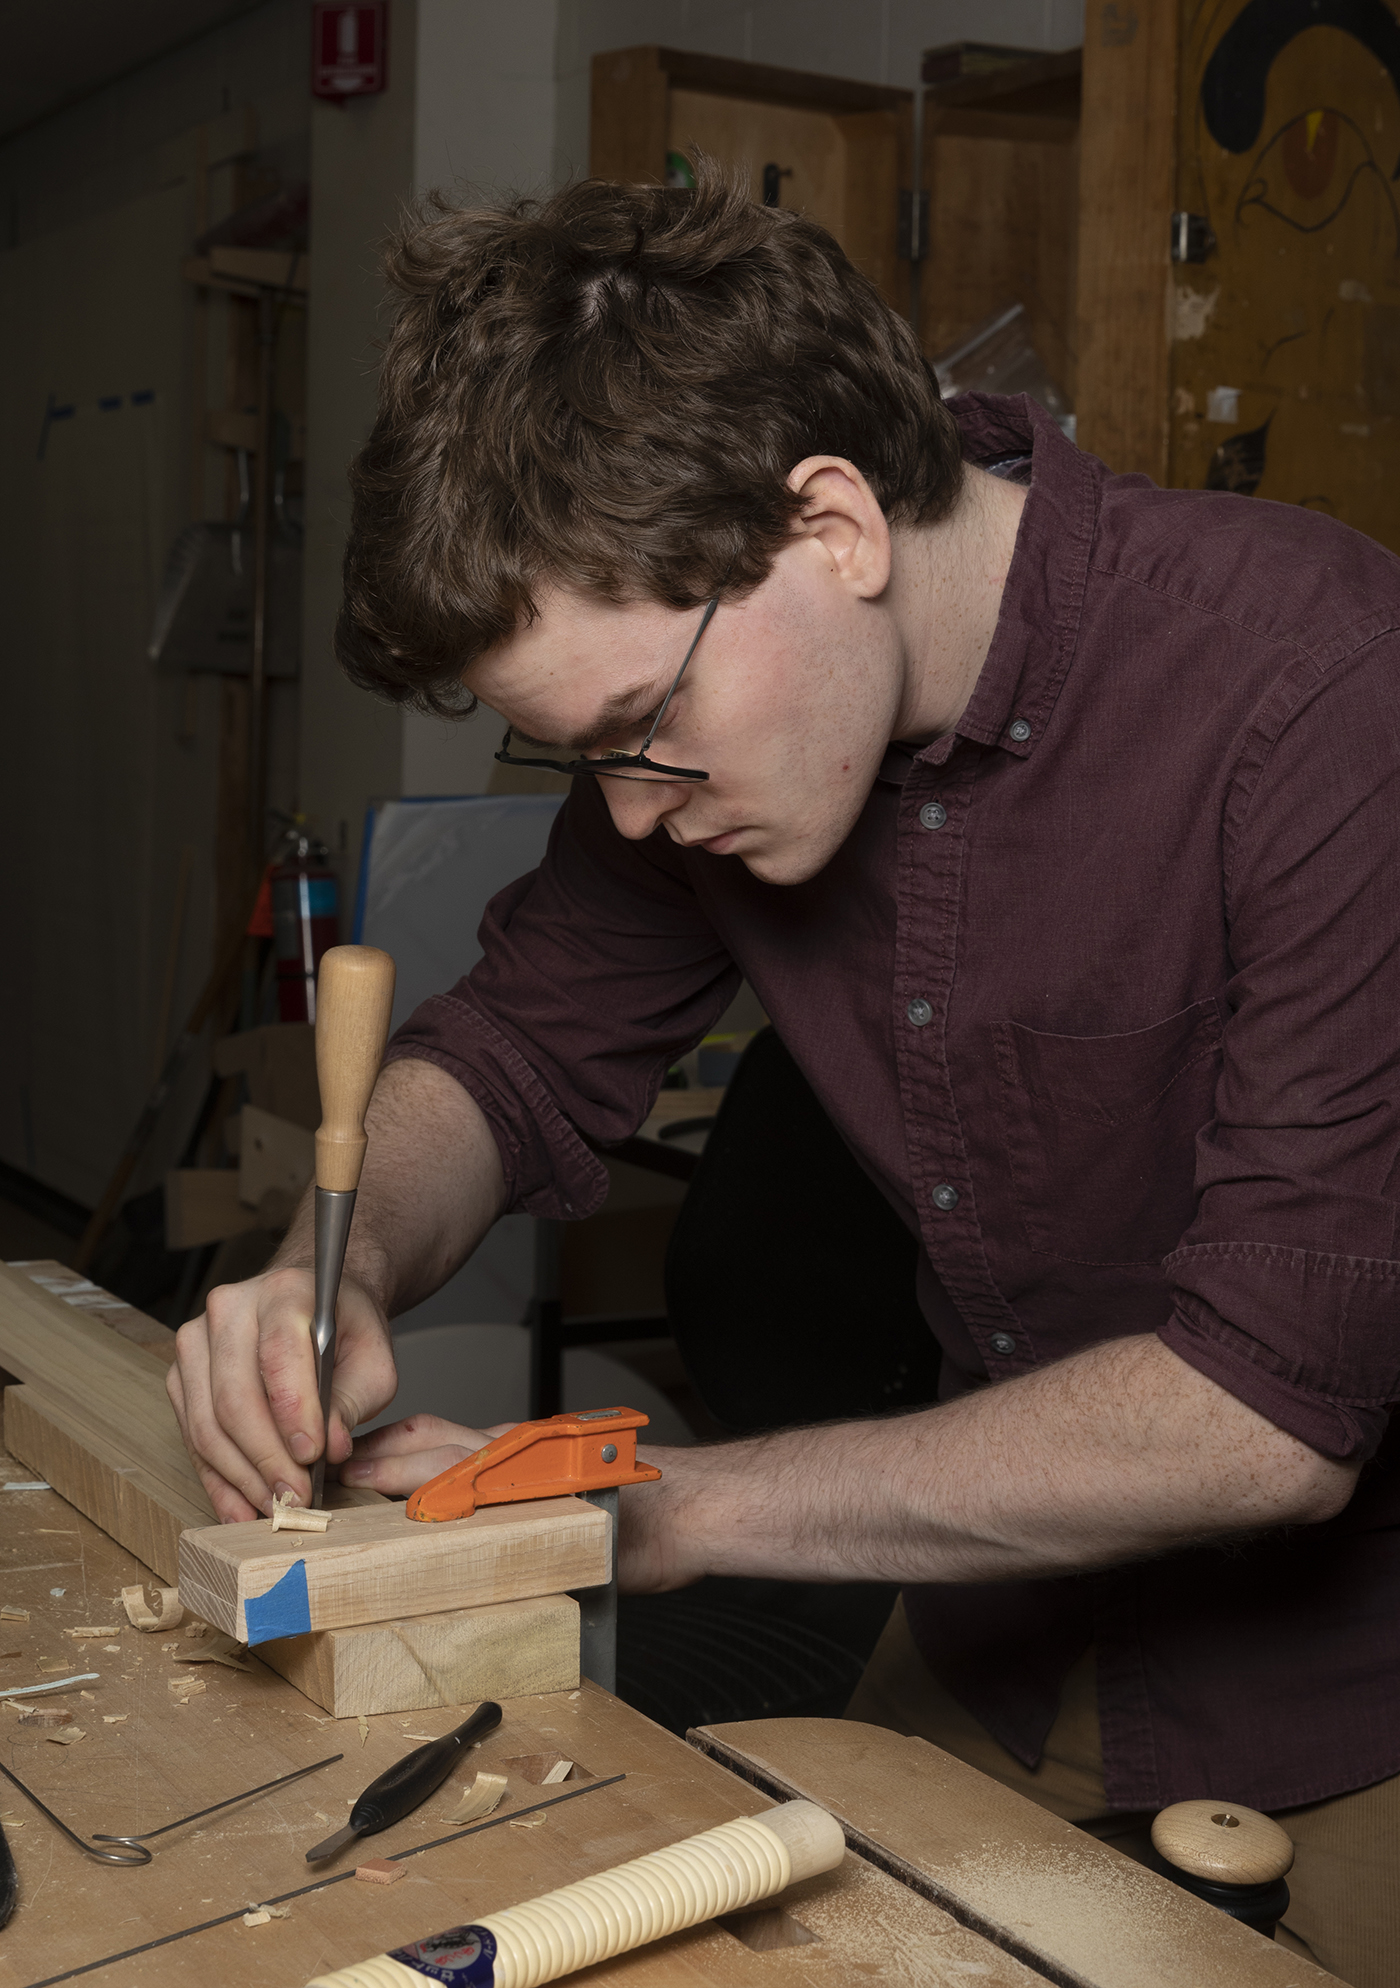 Kelly Cleveland uses a chisel in the furniture design studio.